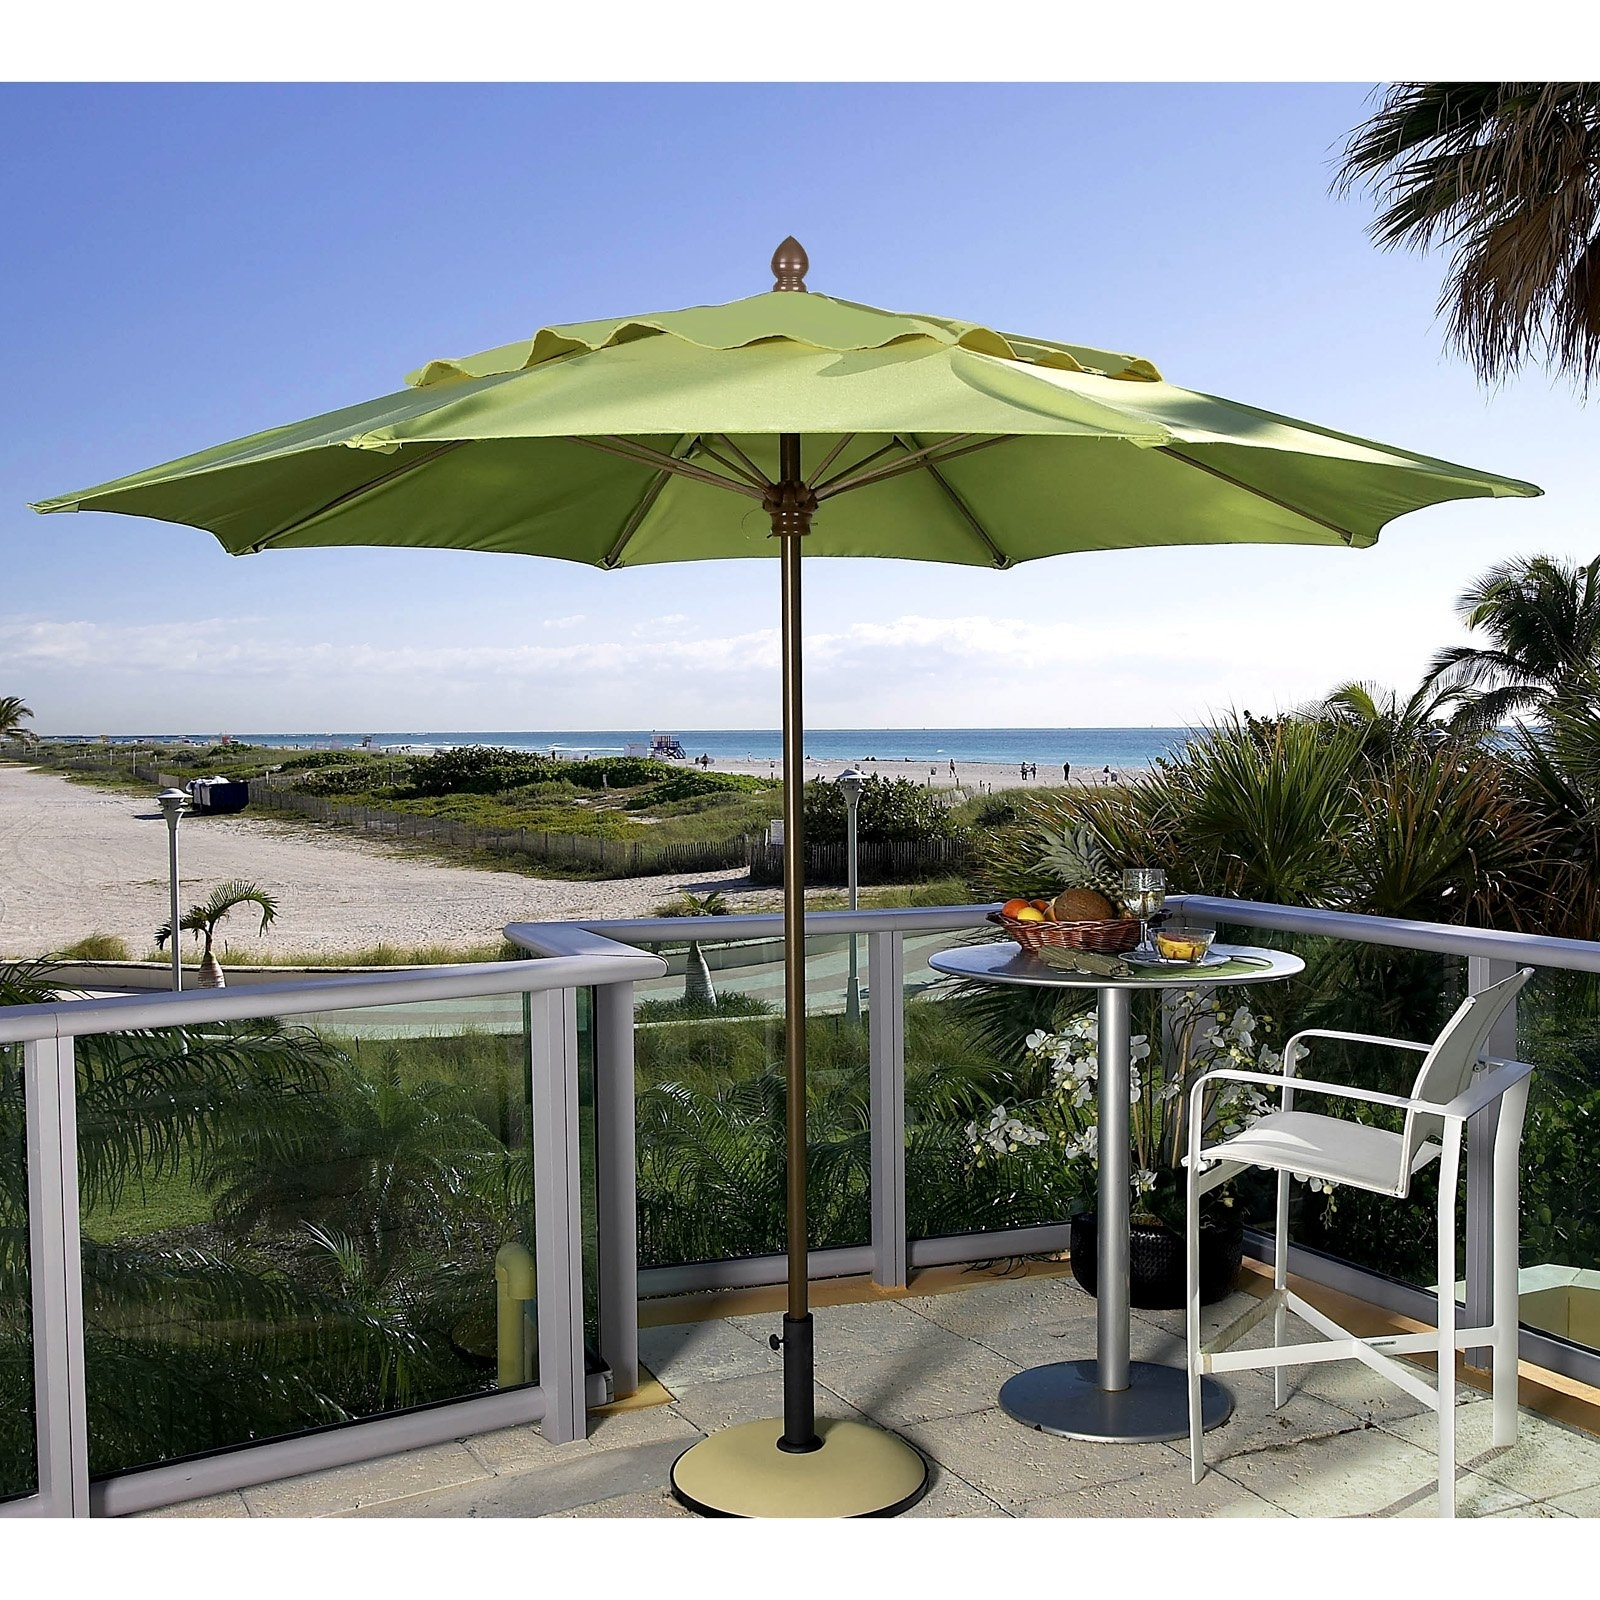 Large Oversized Patio Umbrellas Half For Umbrella Basever Aizi Small With Regard To Newest Half Patio Umbrellas (View 11 of 20)